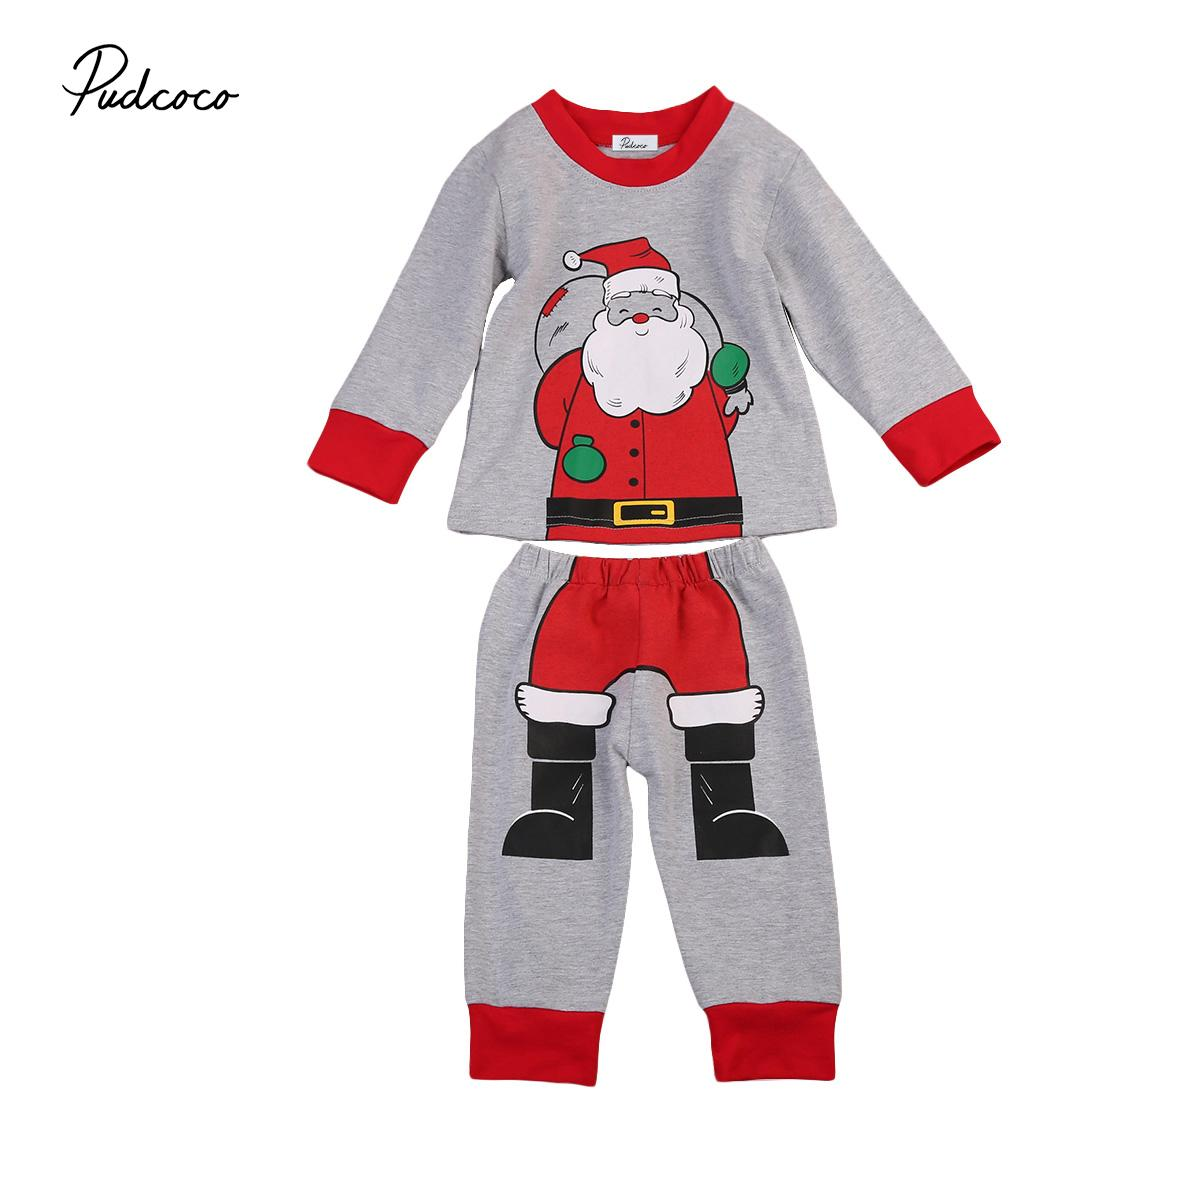 aef5a69d7 Christmas Baby Clothes Kids Boys Girls Happy Autumn Toddler Kids ...